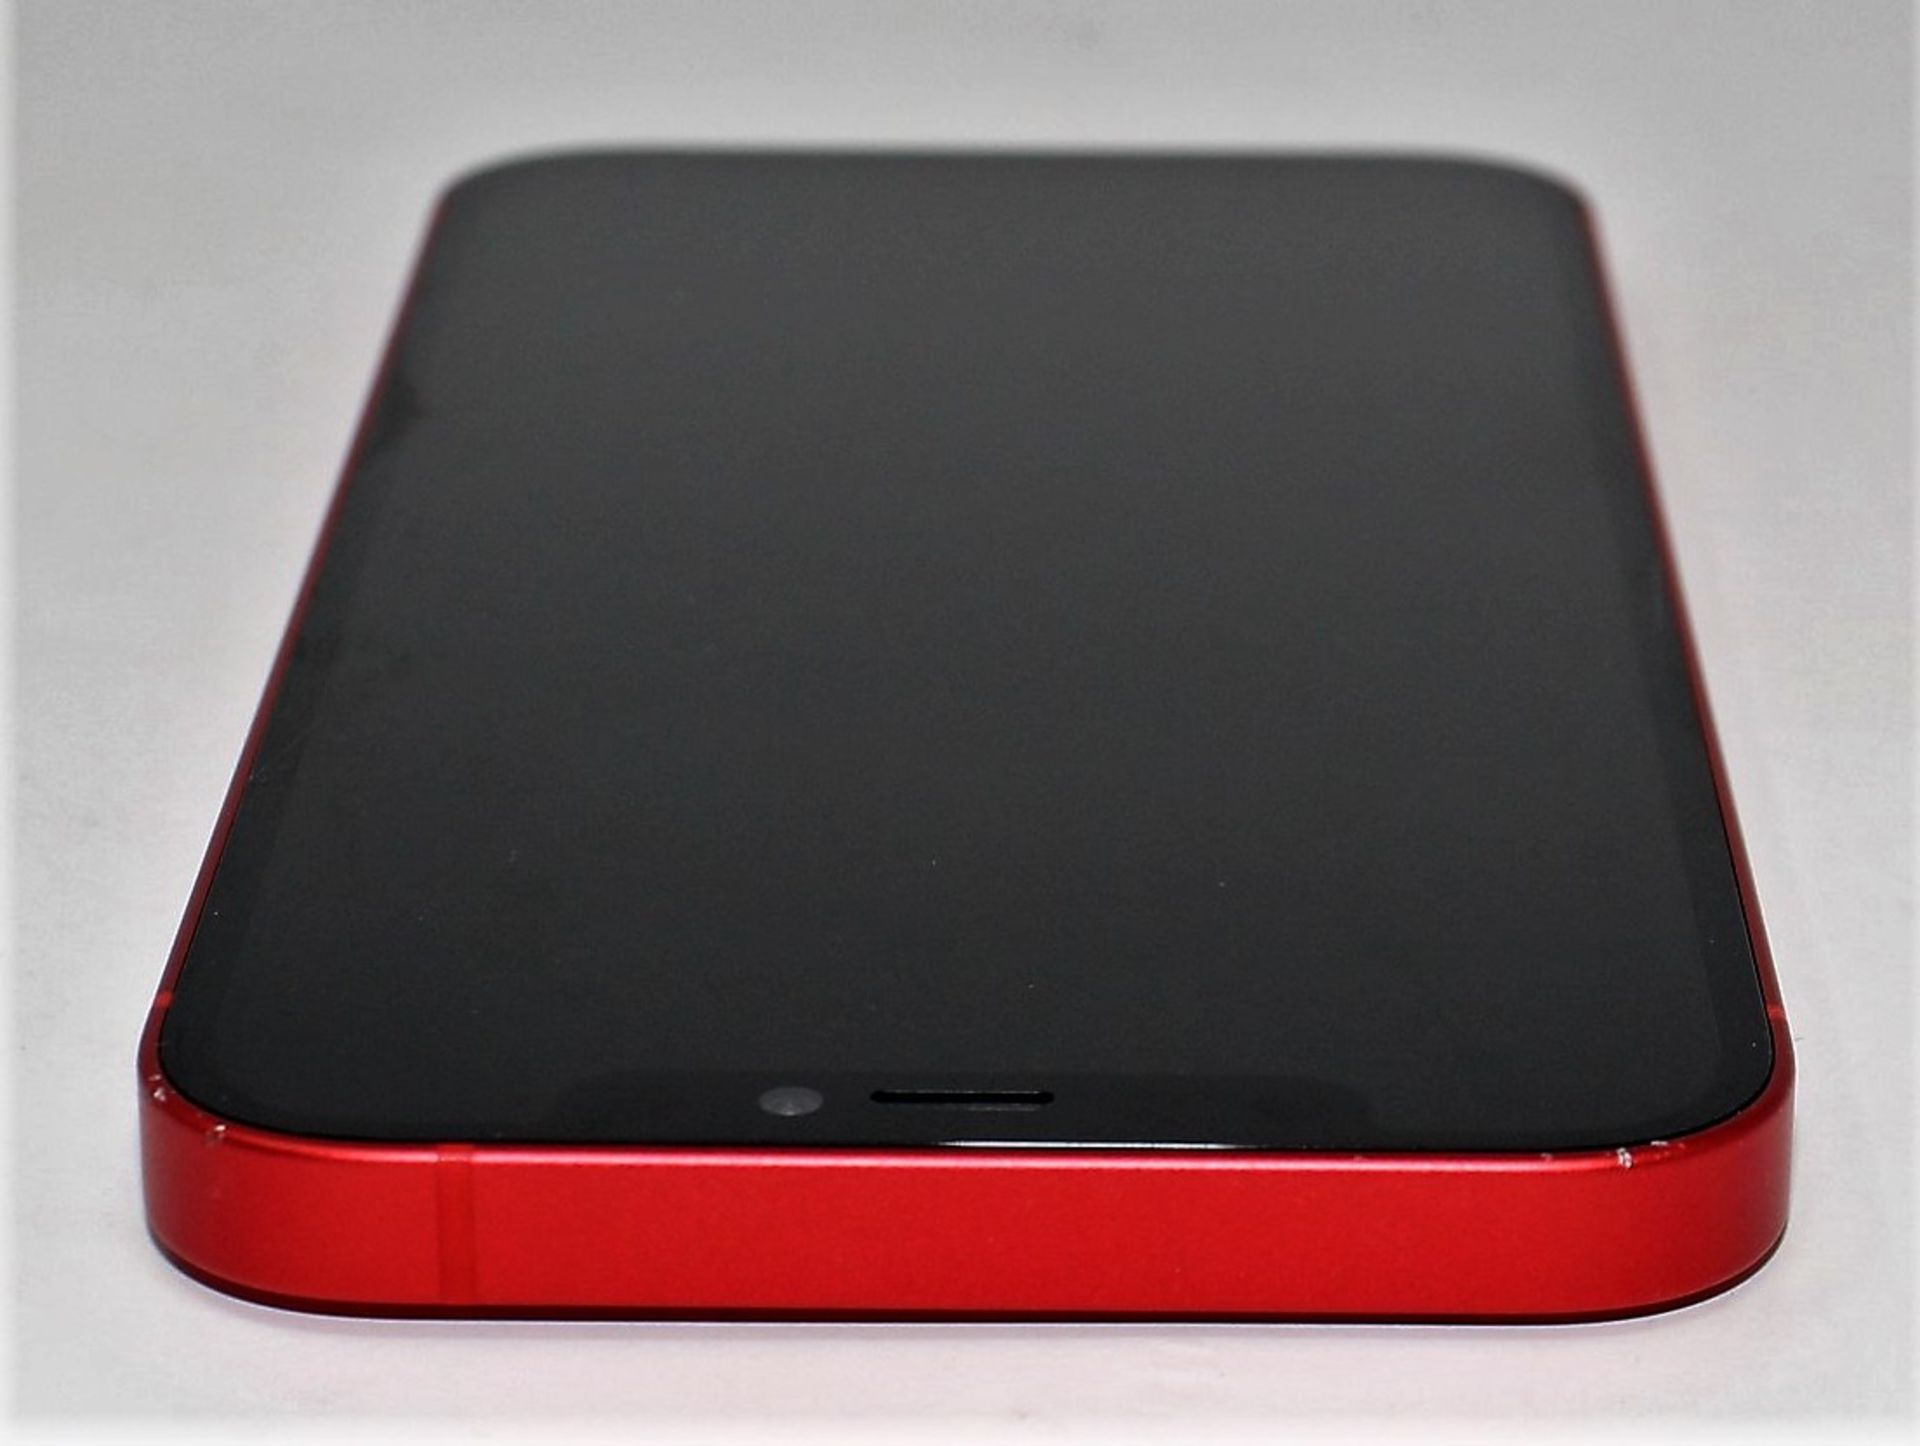 A pre-owned Apple iPhone 12 (Global/A2403) 128GB in Red (FRP clear. Some scratches to screen glass - Image 5 of 16